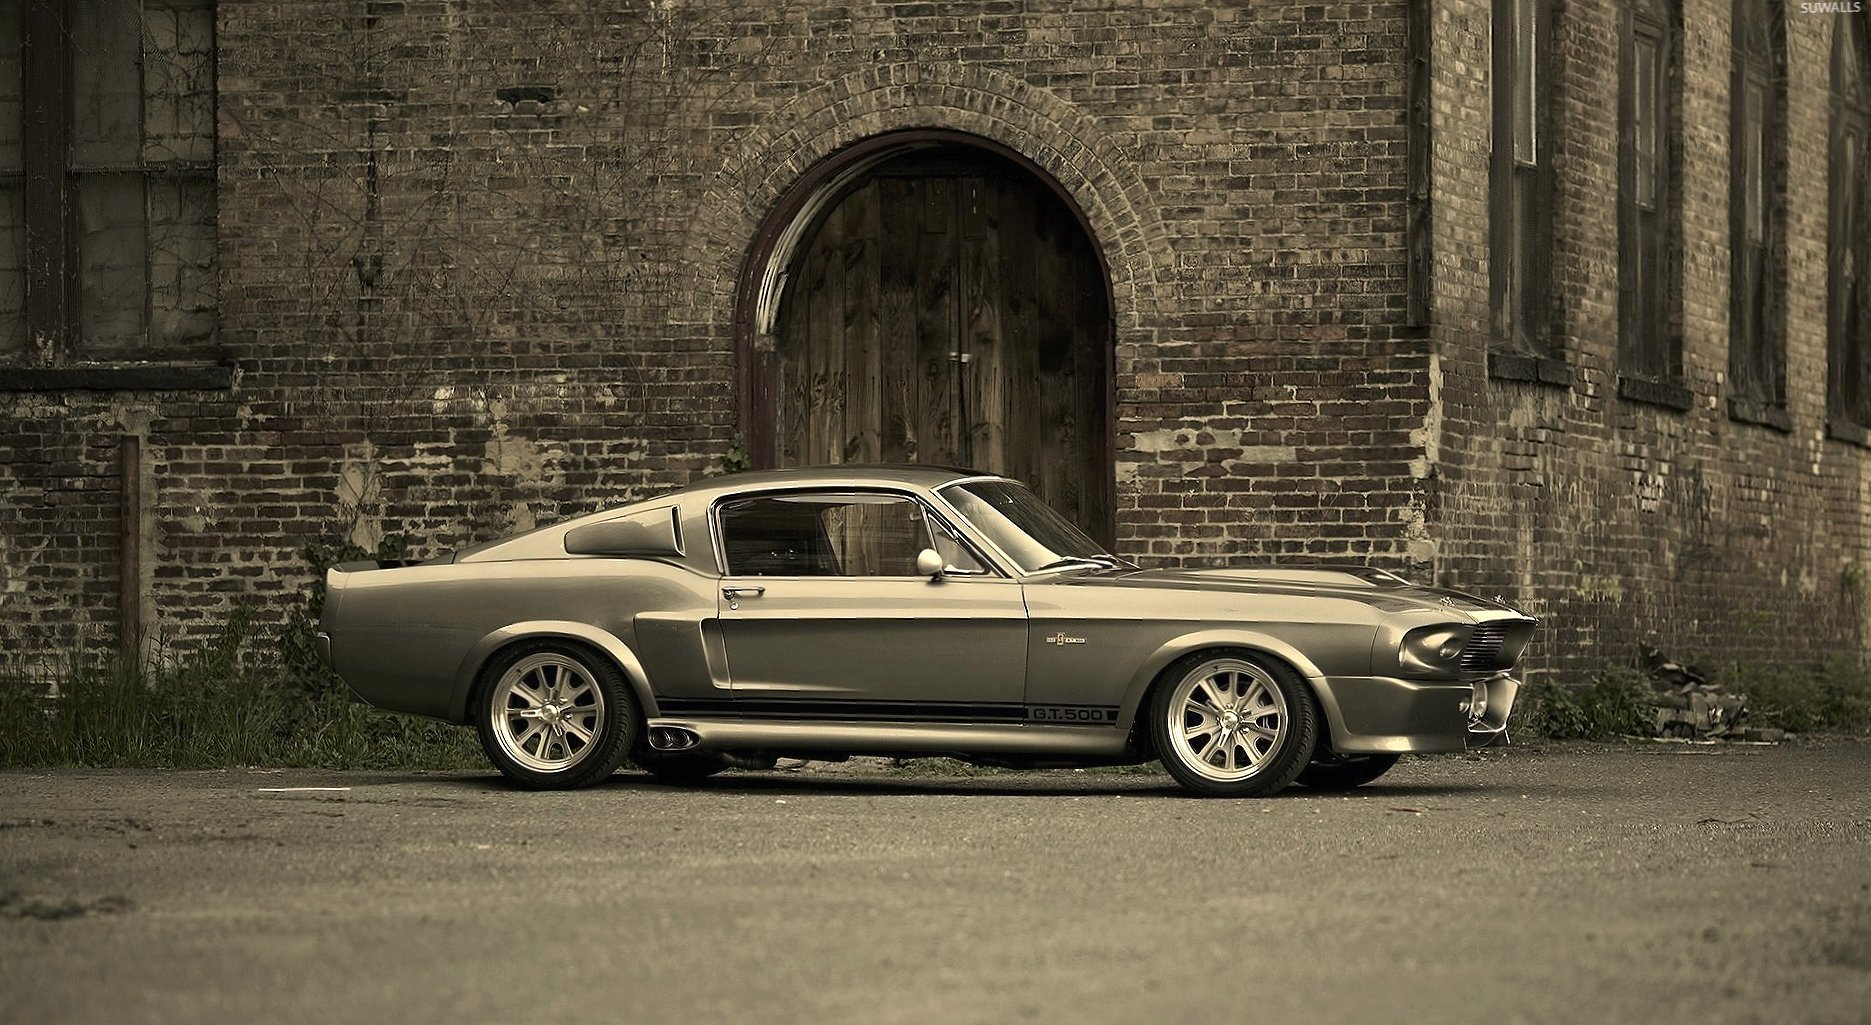 Side view of a 1967 Shelby G.T.500 wallpapers HD quality